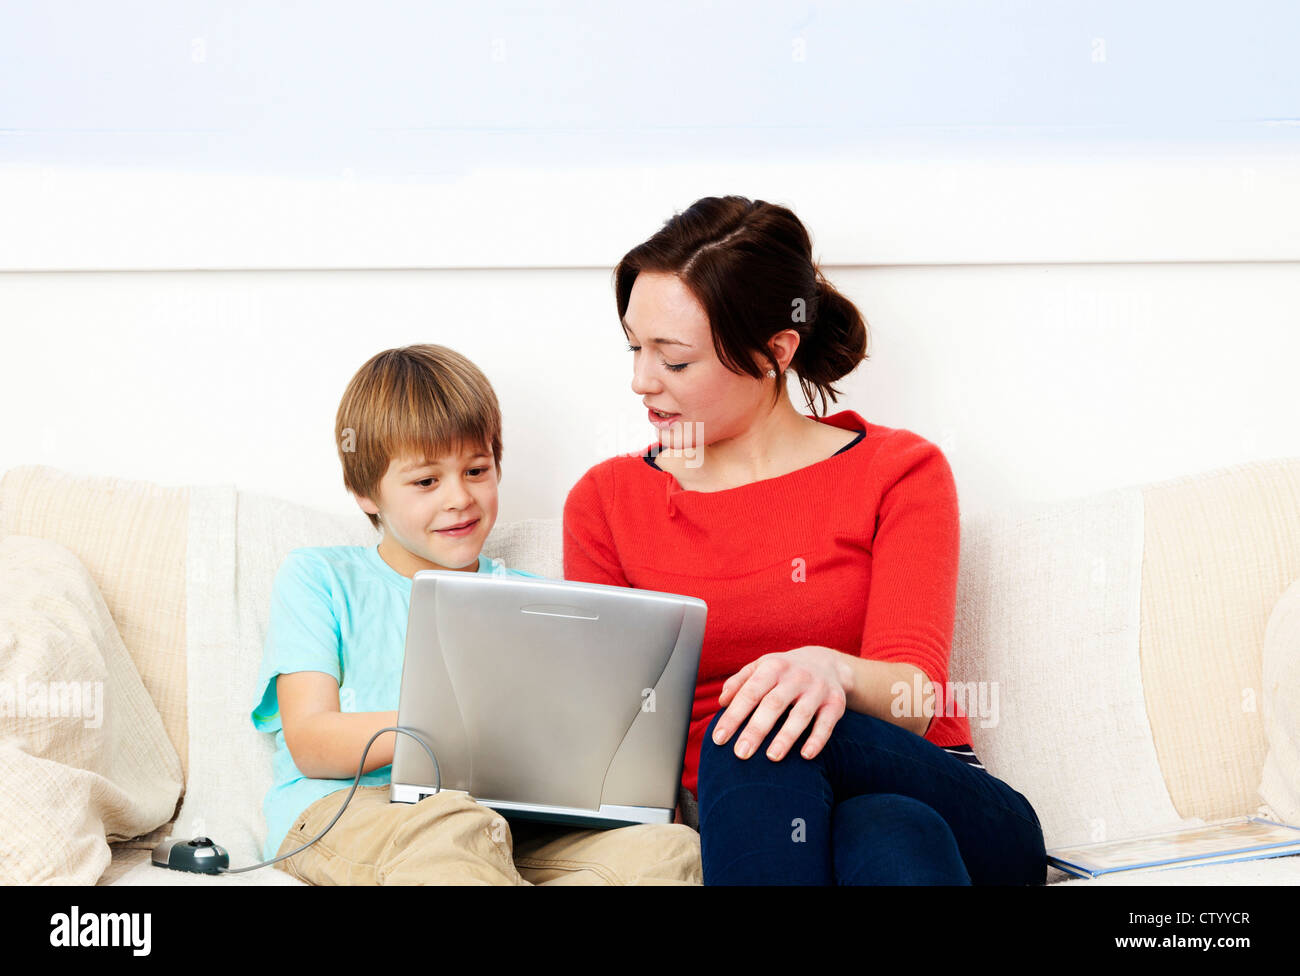 Mother and son using laptop together - Stock Image